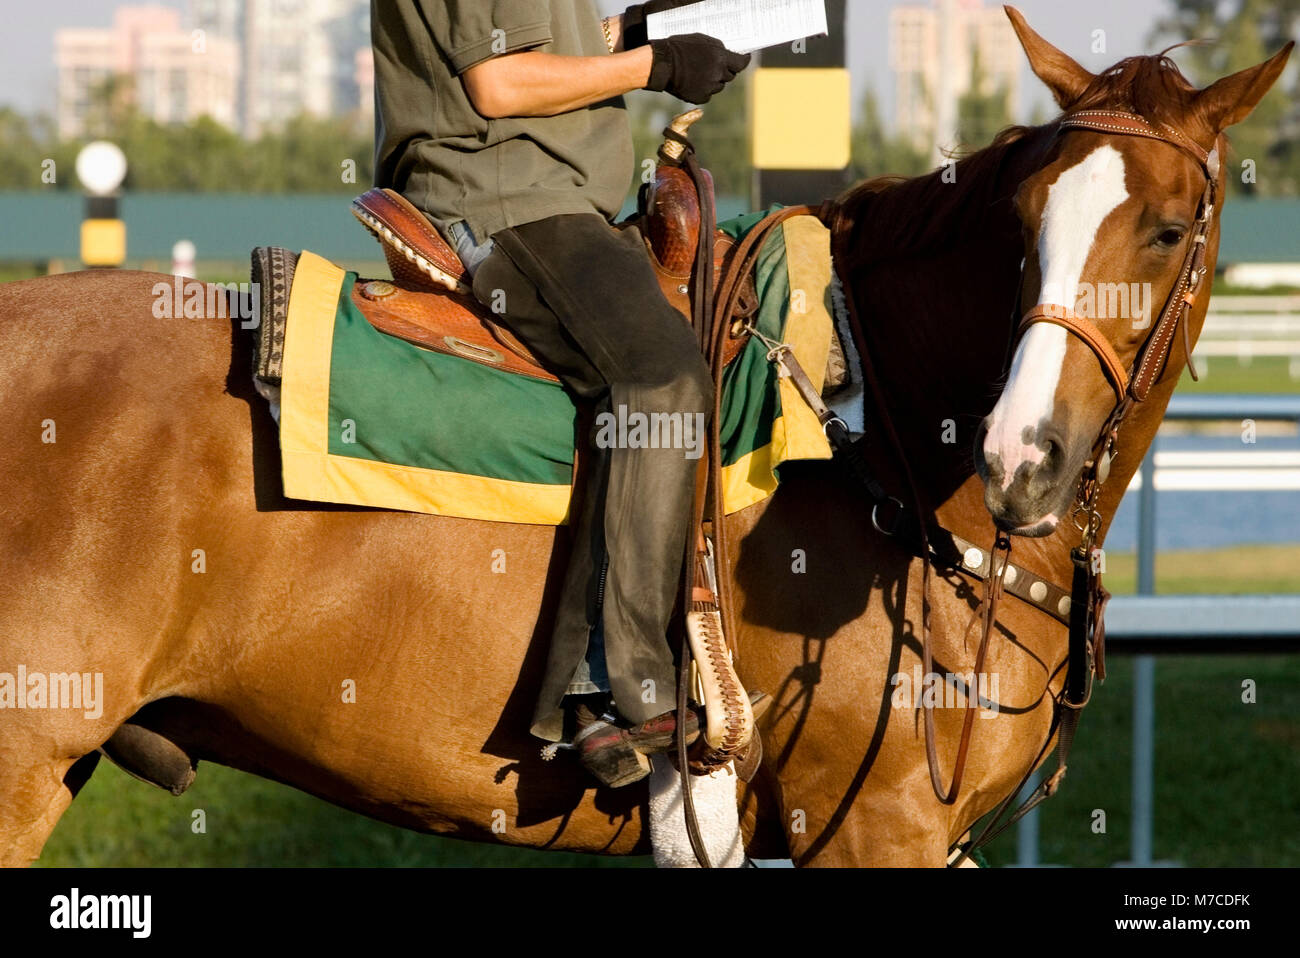 Side profile of a man riding a horse - Stock Image